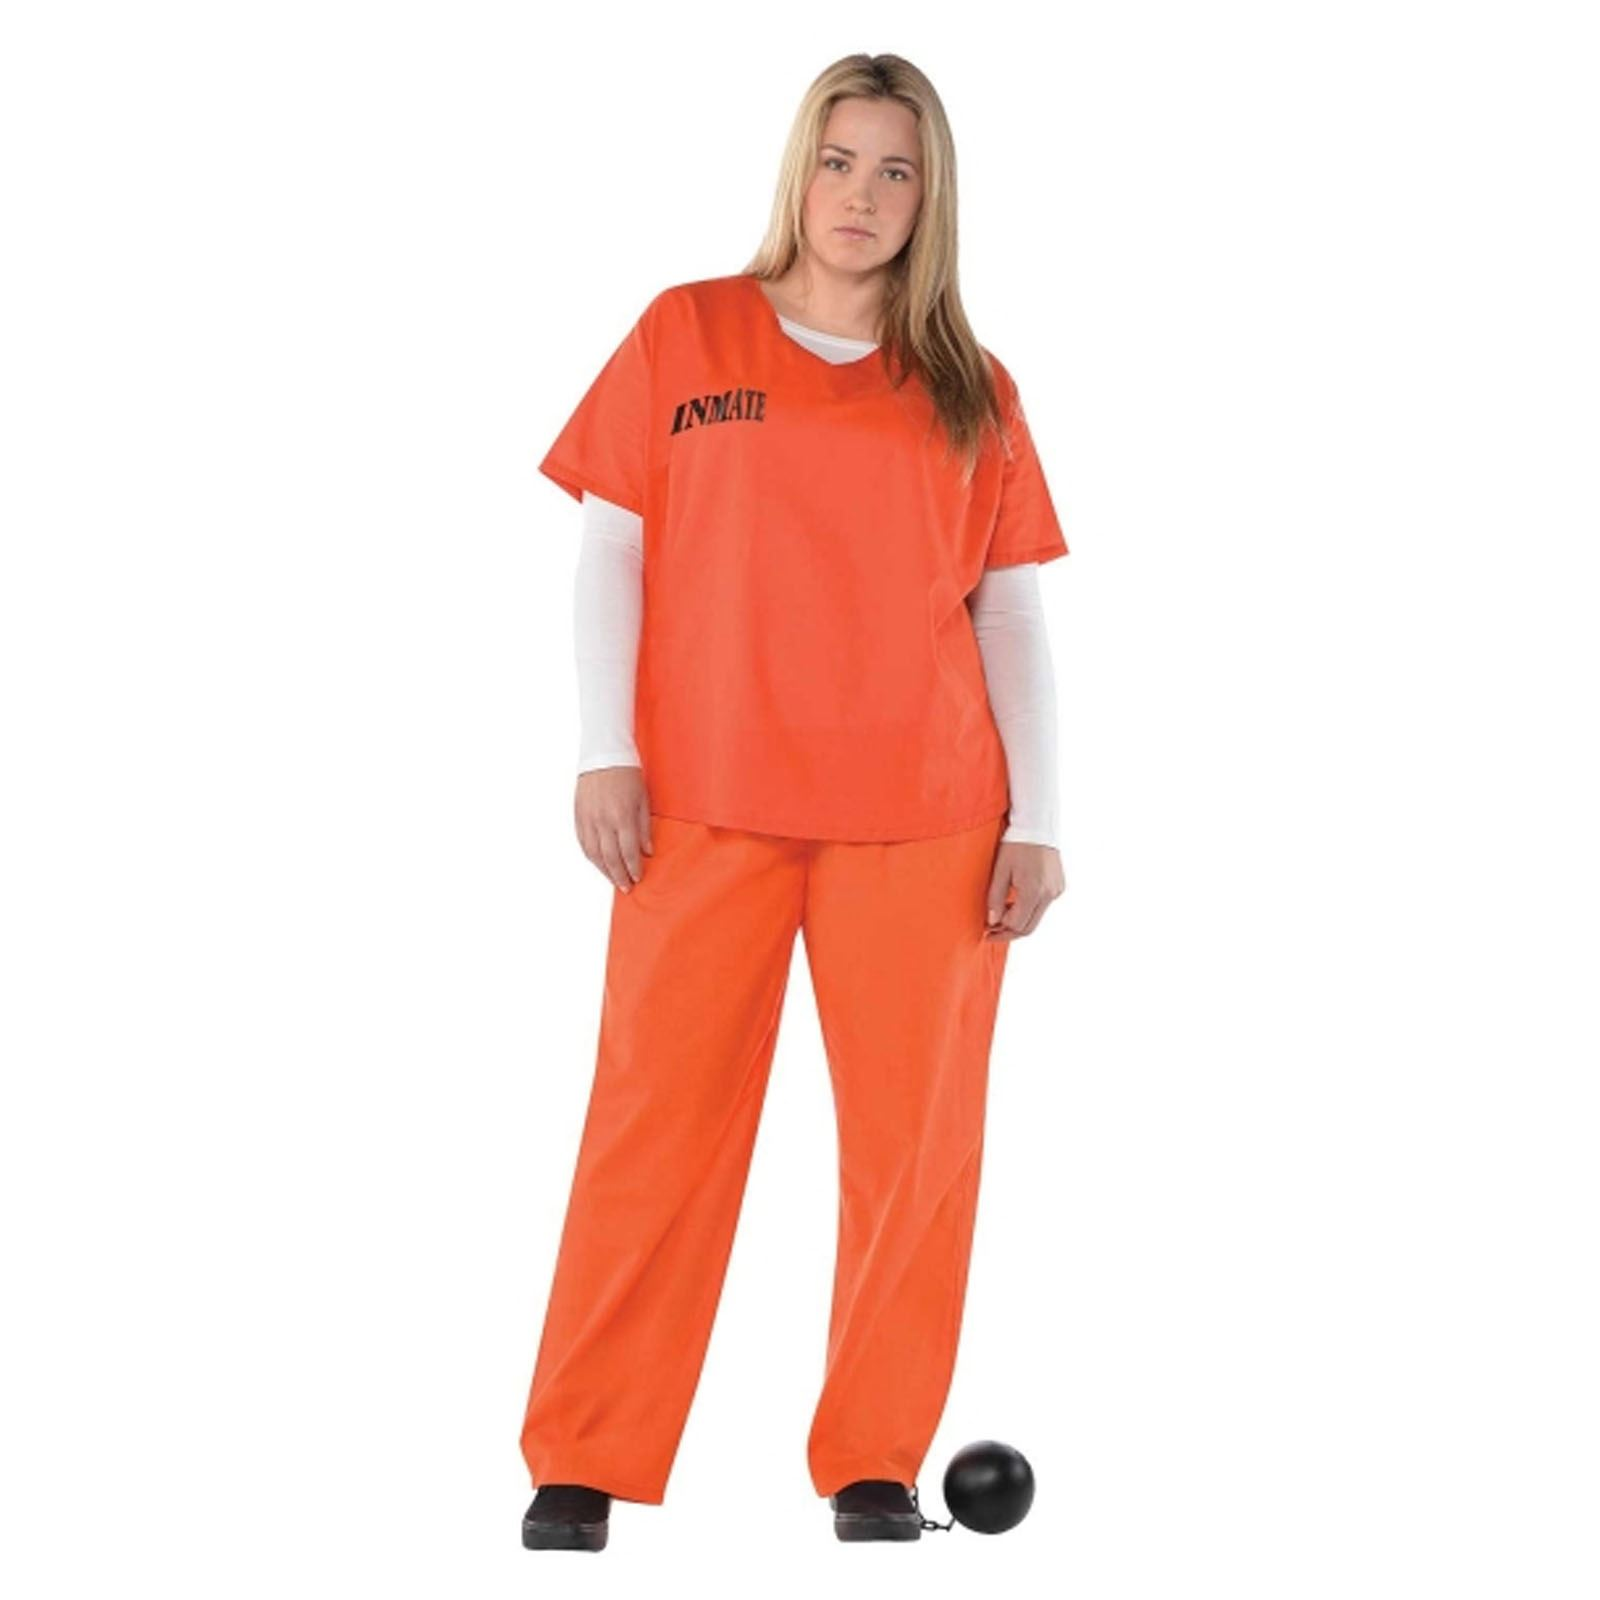 girl in prison uniform